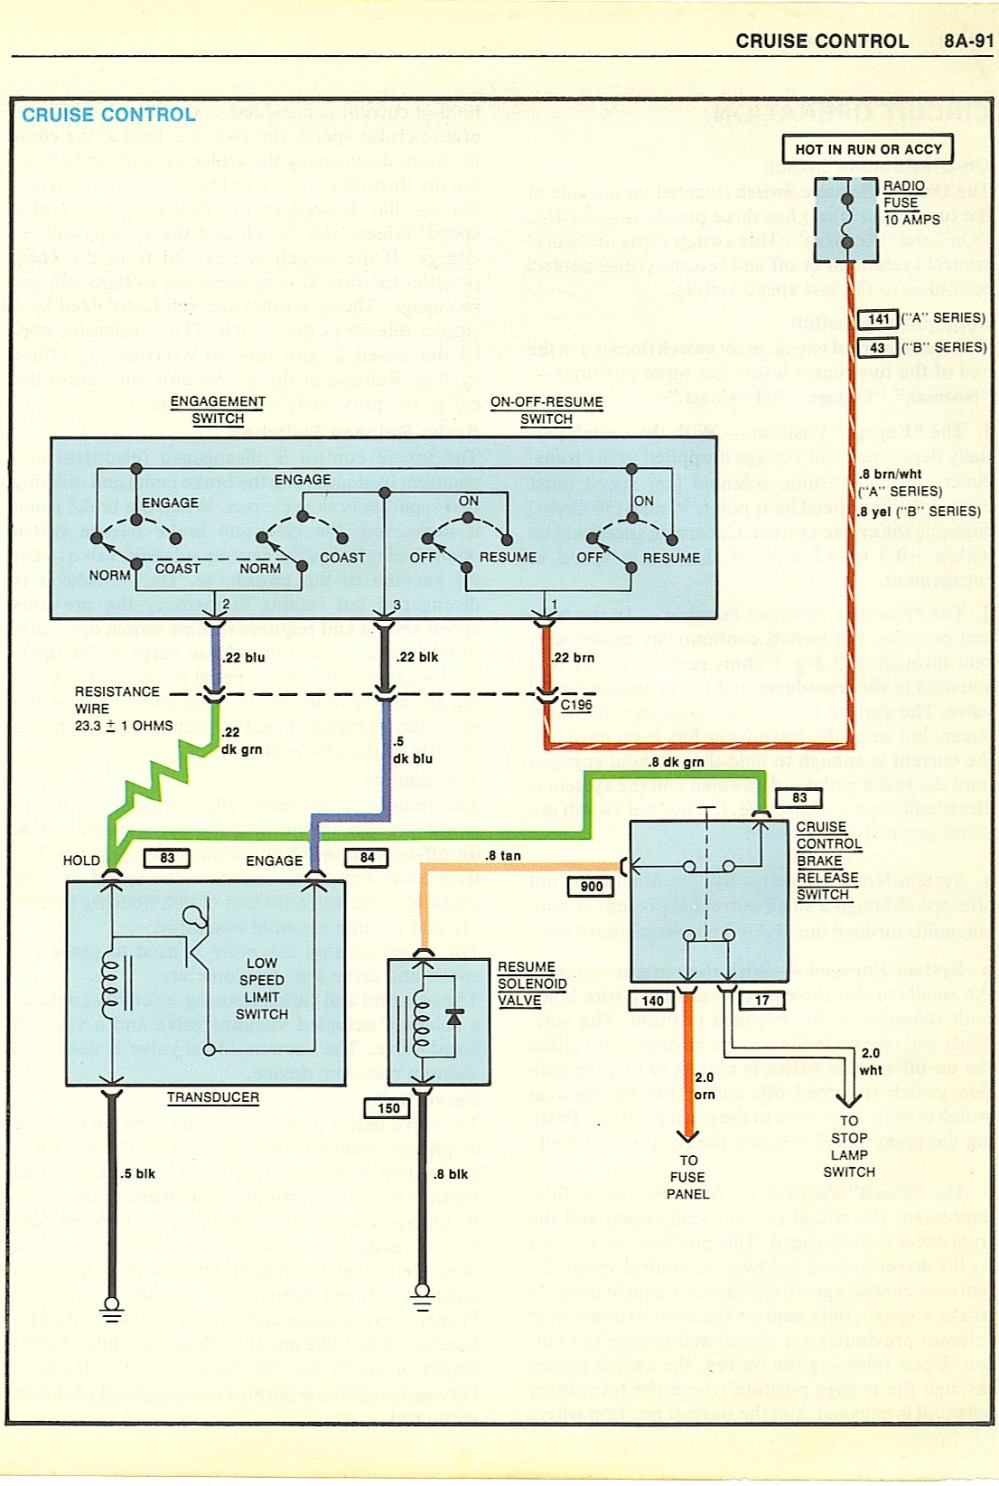 medium resolution of general cruise control diagram wiring diagrambuick cruise control diagram blog wiring diagrambuick cruise control diagram use